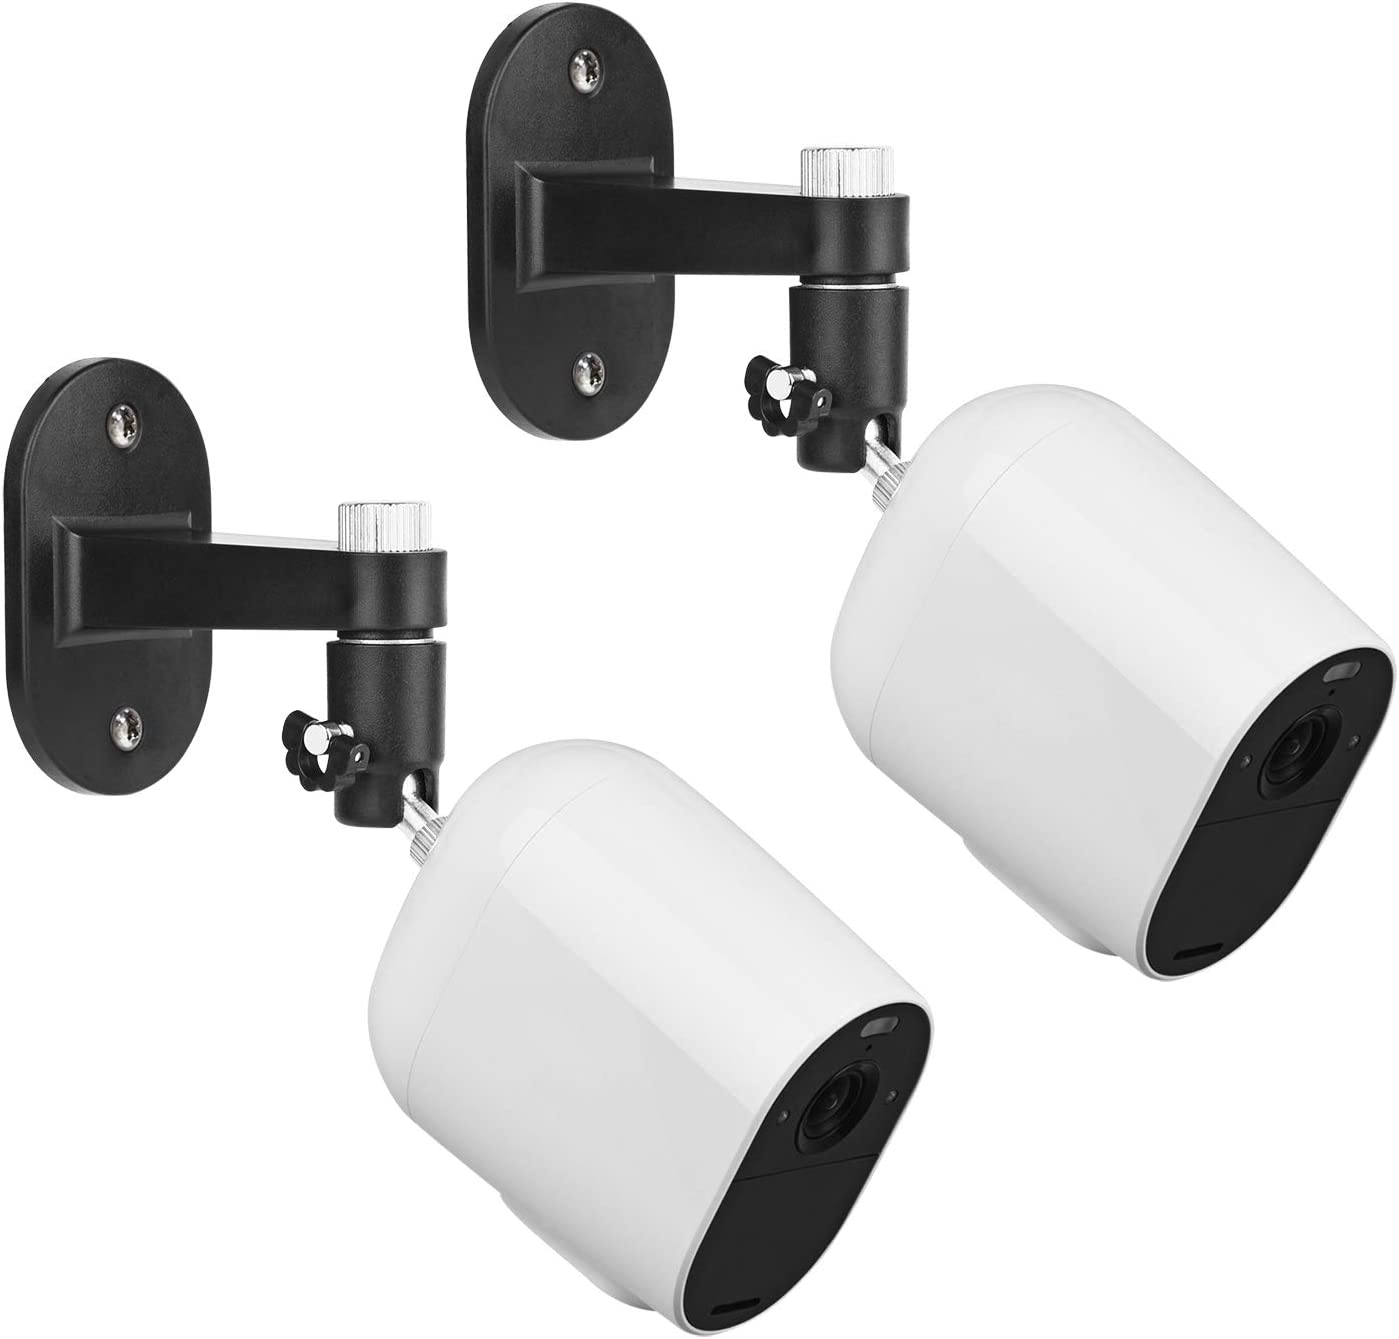 2Pack Security Wall Mount for Arlo Pro, Arlo Pro 2, Arlo Ultra, Arlo Pro 3, Arlo Go, Arlo Essential Spotlight Camera, Adjustable Indoor/Outdoor Mounting Bracket for Your Surveillance Camera (Black)